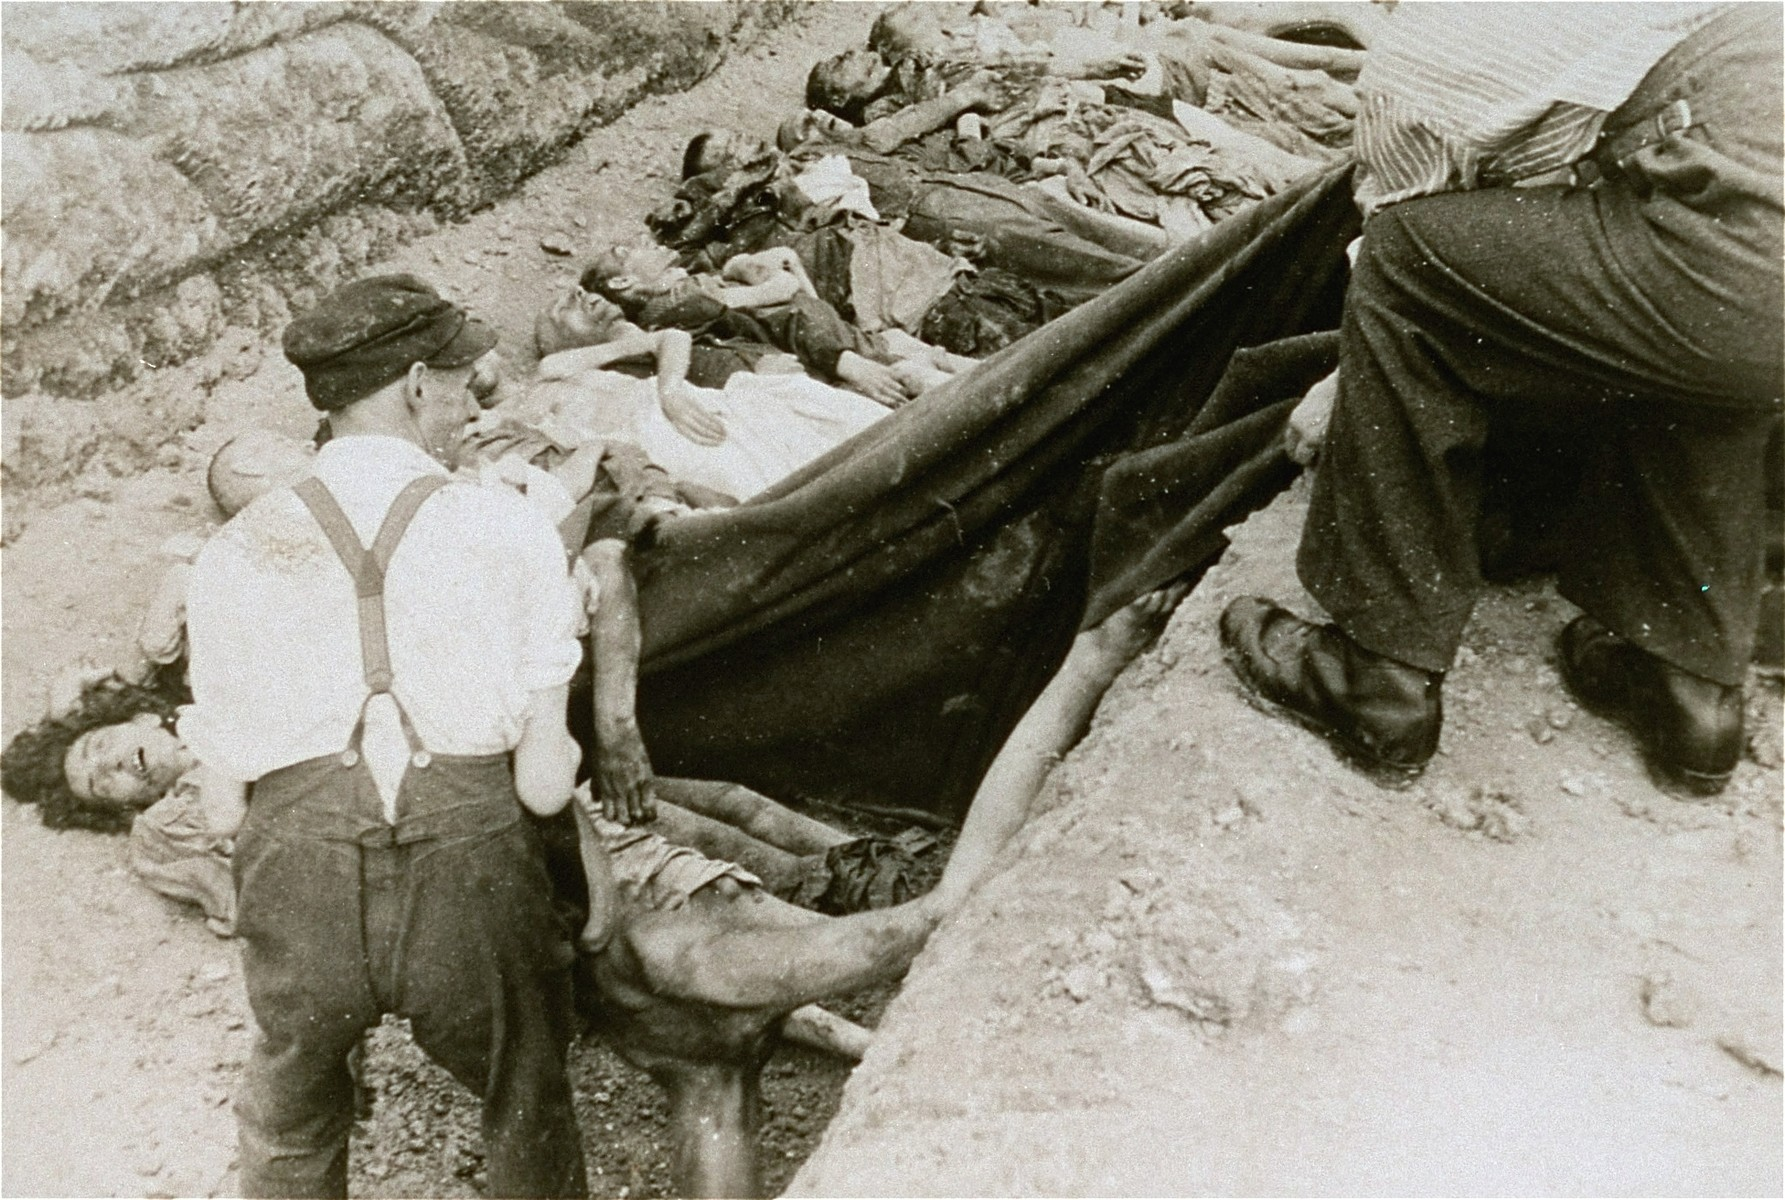 Austrian civilians lay the bodies of former inmates in a mass grave in the Mauthausen concentration camp.